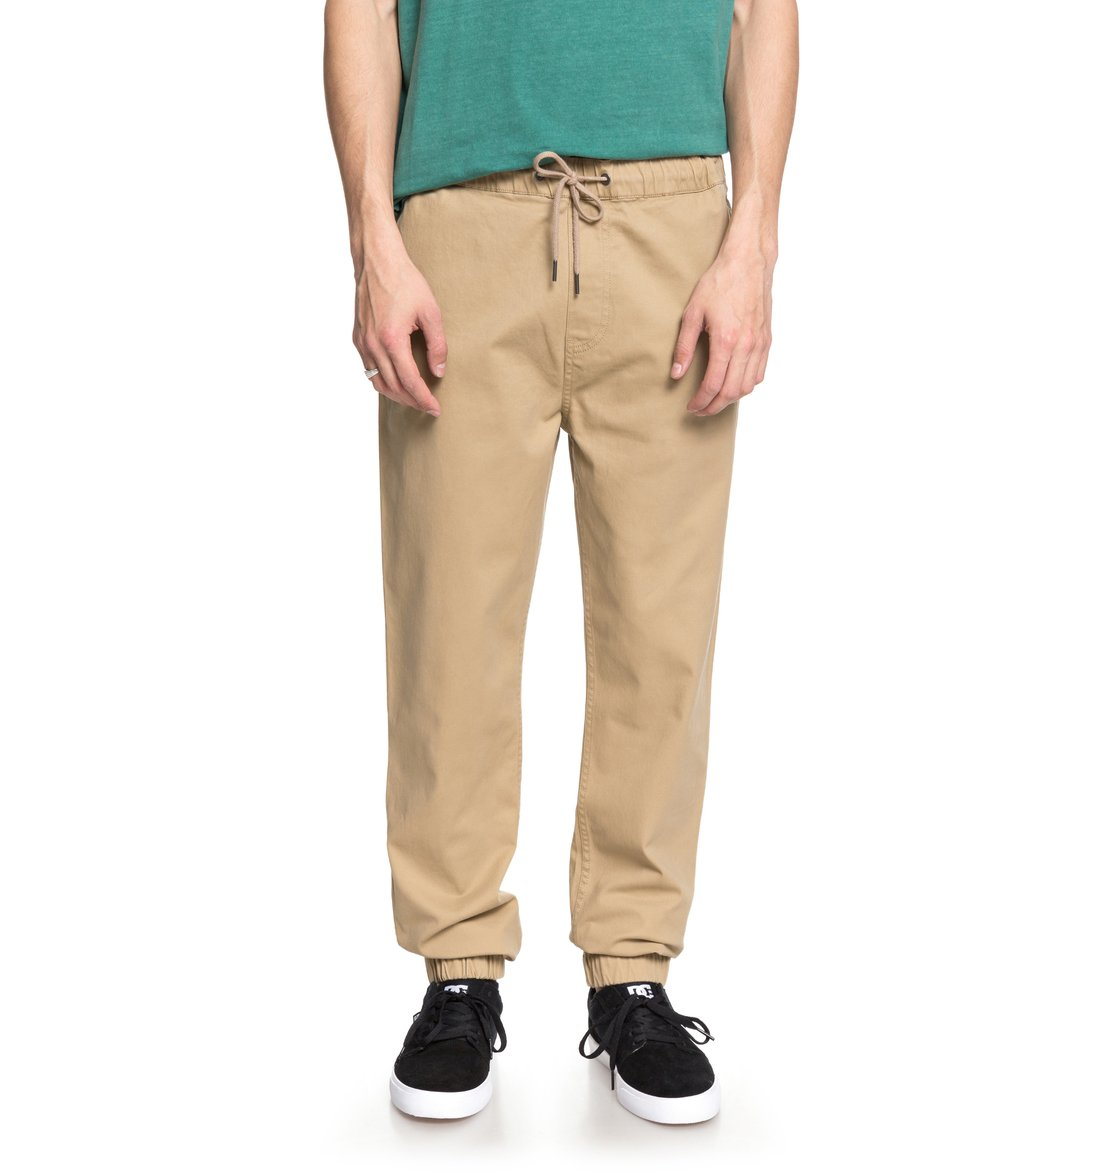 Chino Joggingbroek Heren.Blamedale Chino Joggingbroek 3613373389886 Dc Shoes